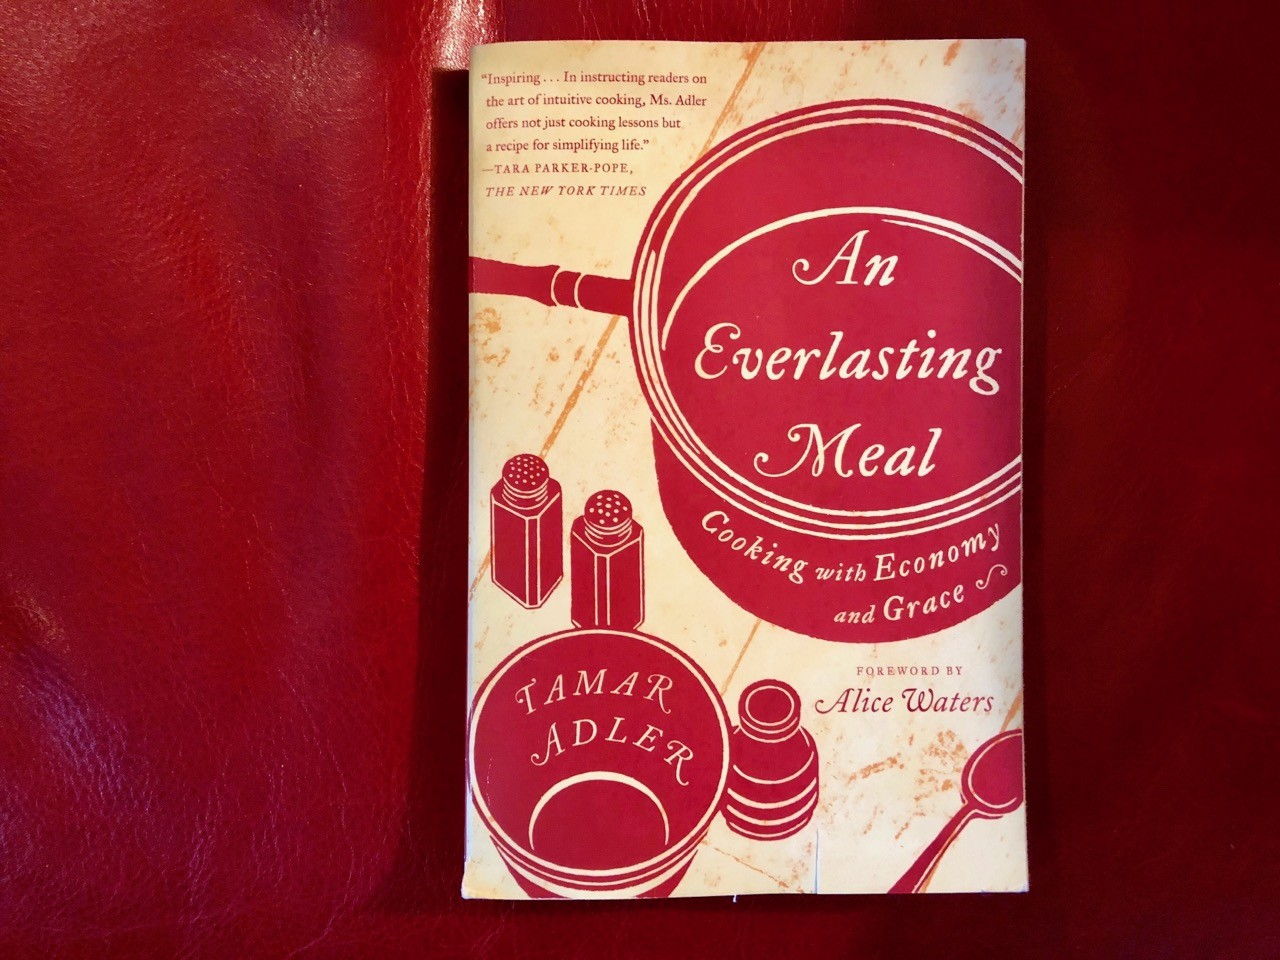 Adler's Sage Advice on Eating and Living Well